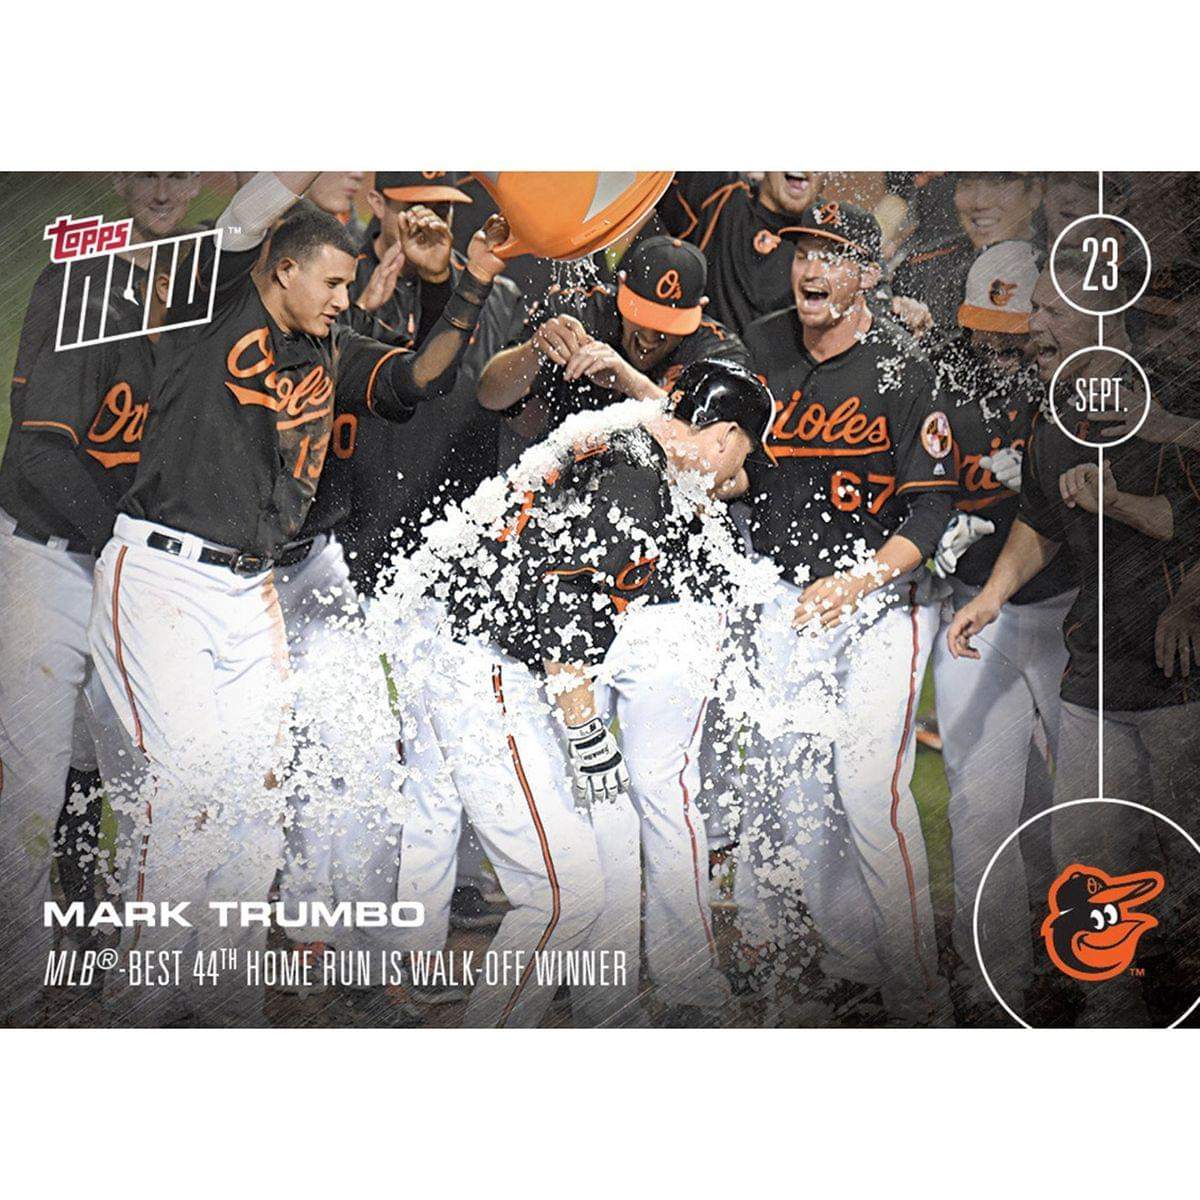 MLB Baltimore Orioles Mark Trumbo #494 Topps NOW Trading Card